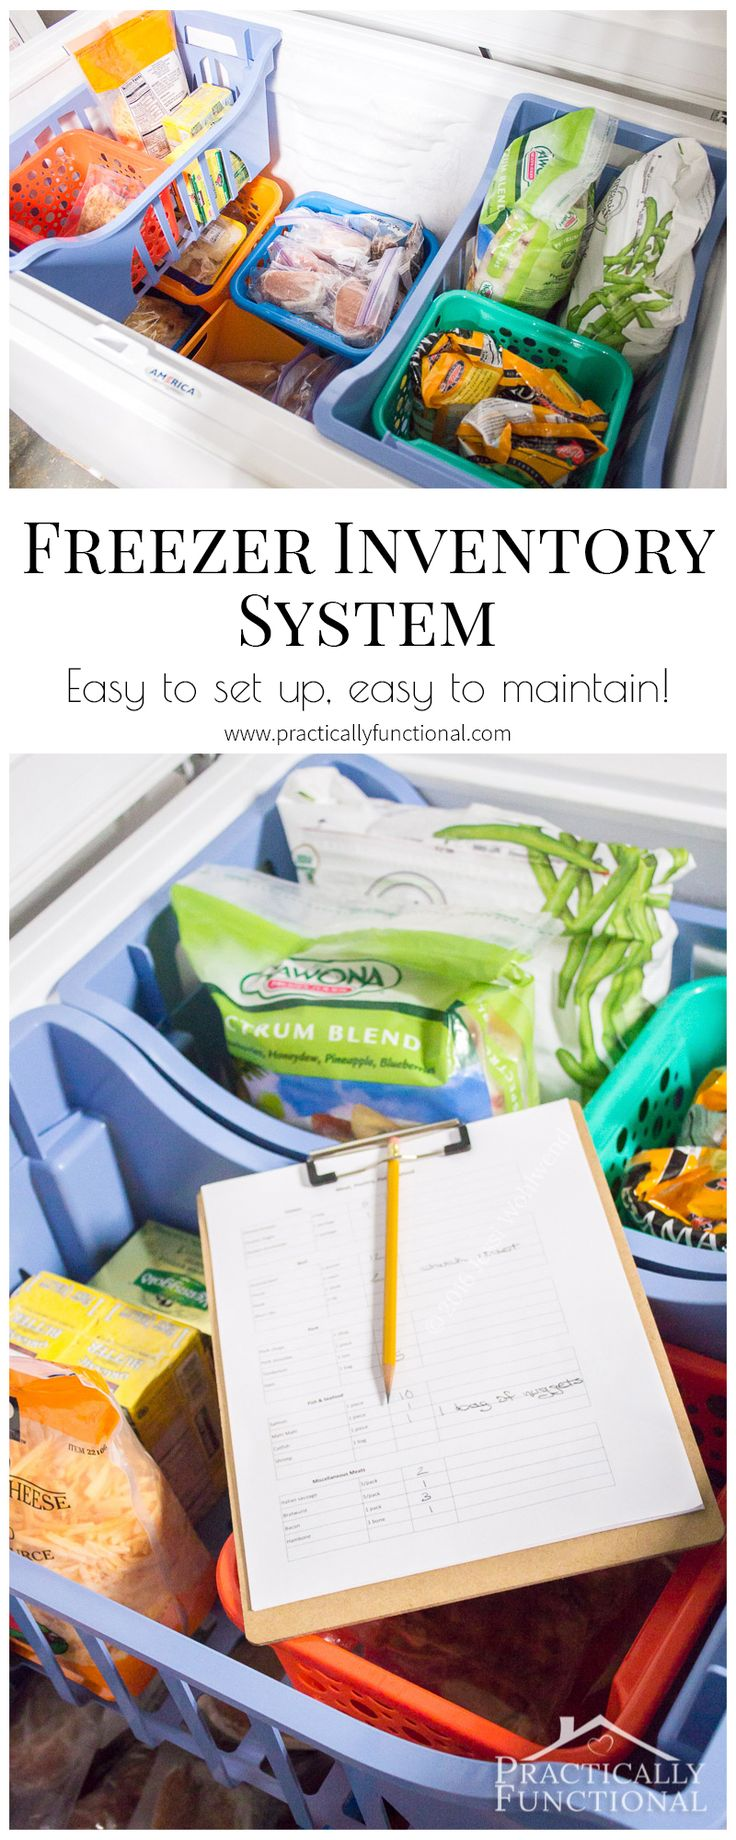 Love this simple chest freezer inventory system, it's so easy to set up and easy to maintain!